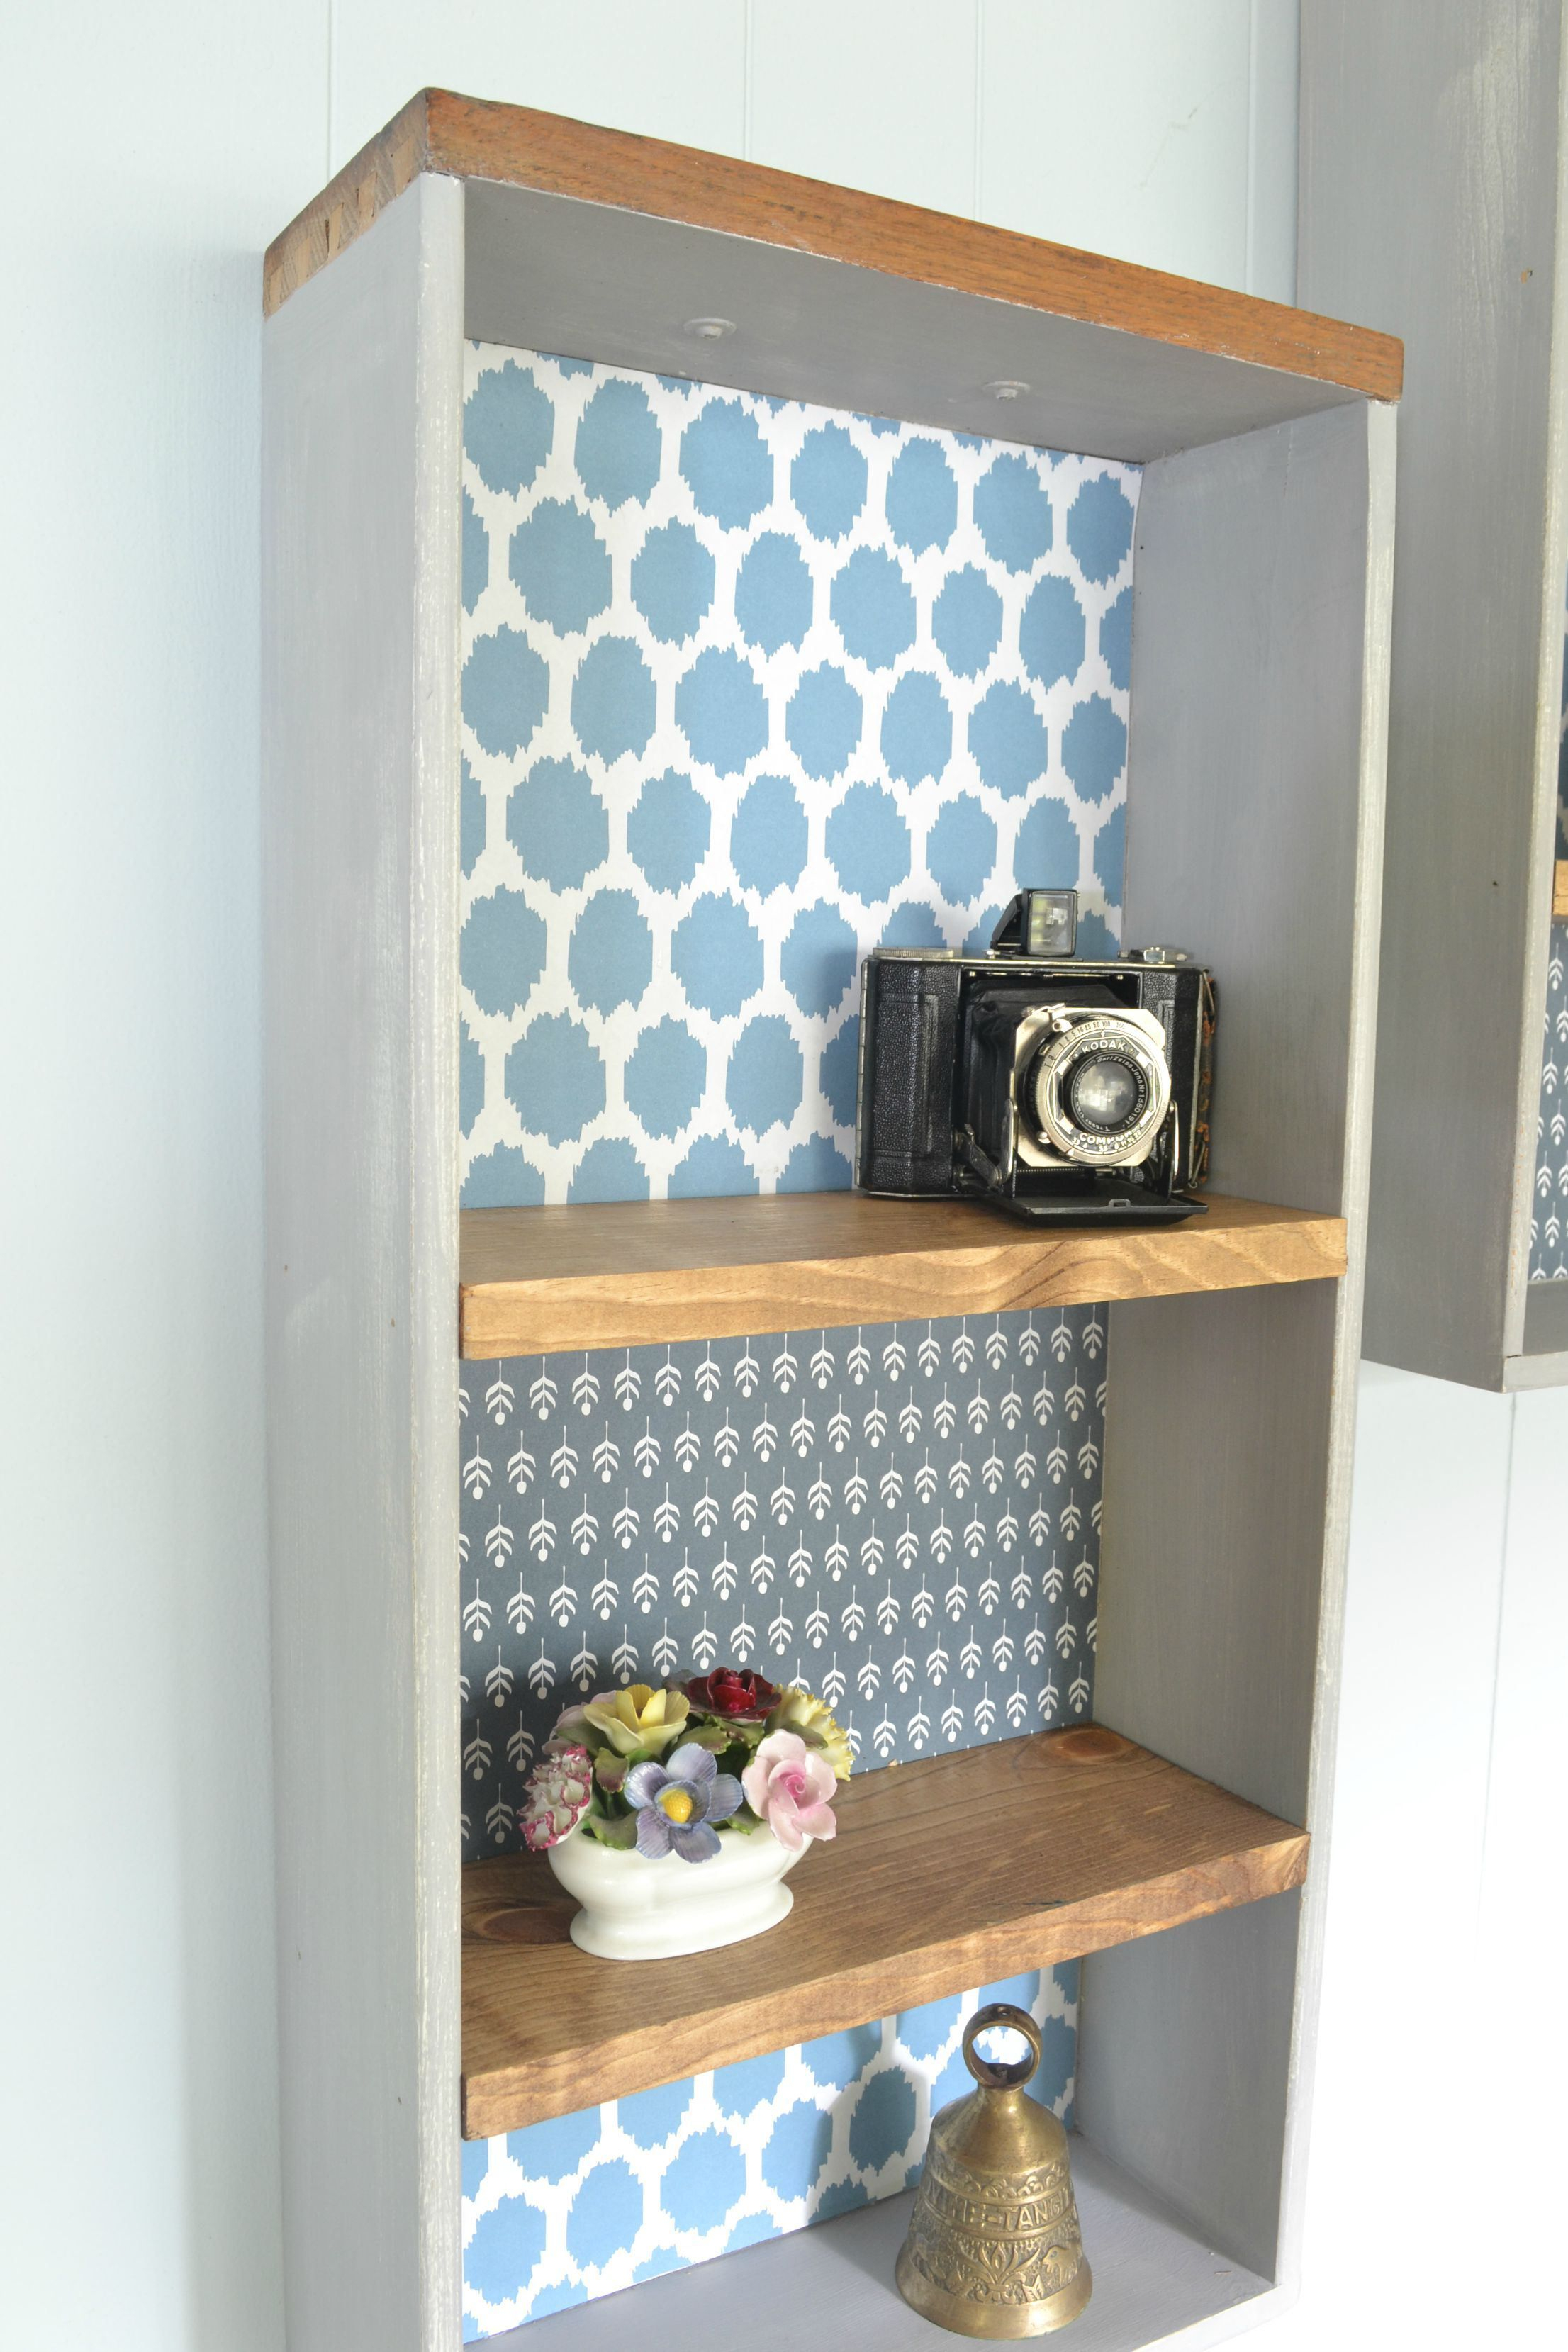 Upcycle Old Drawers Into Decorative Shelves | Old Drawers